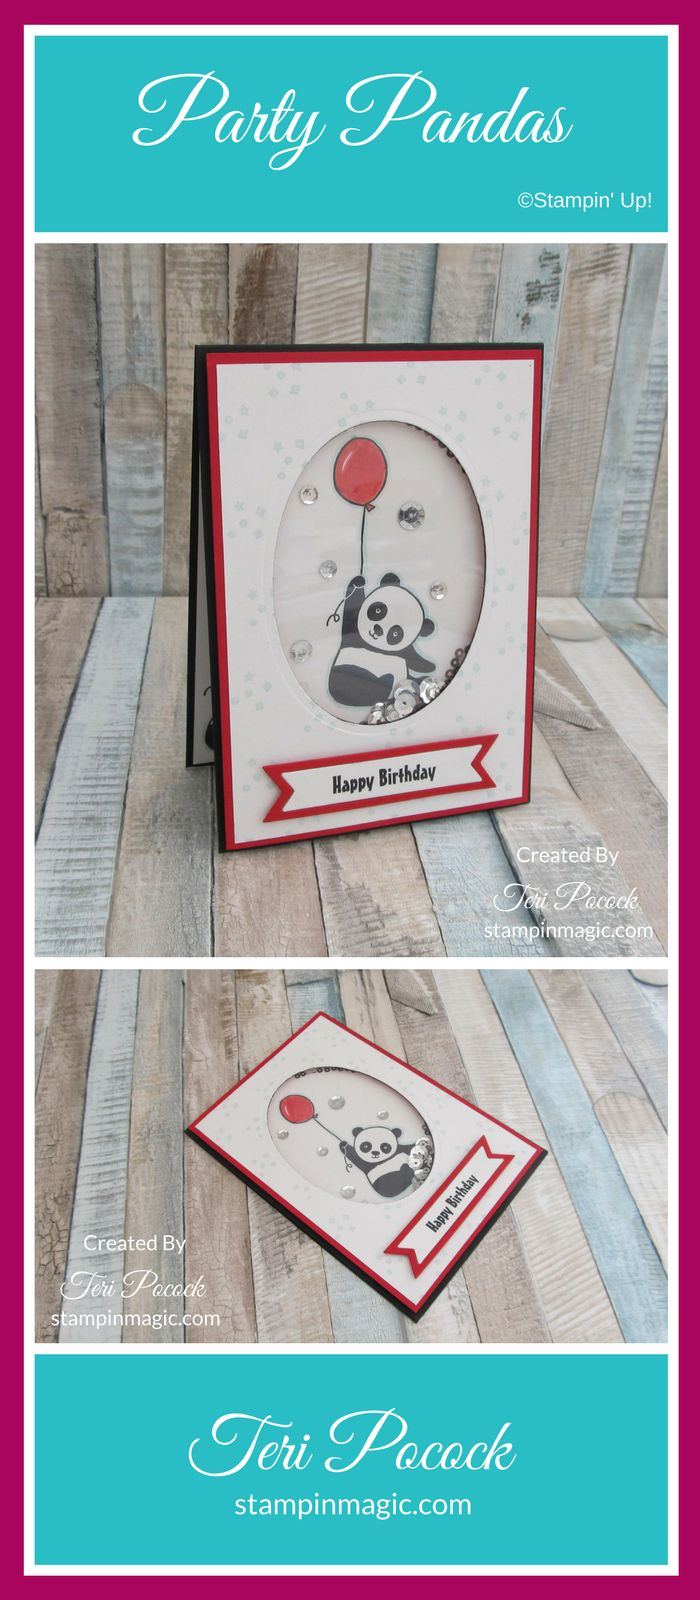 Party Pandas by Stampin Up. Created by UK Independent Demonstrator Teri Pocock. Click through for more details.#teripocock #stampinup #stampinupuk #partypandas